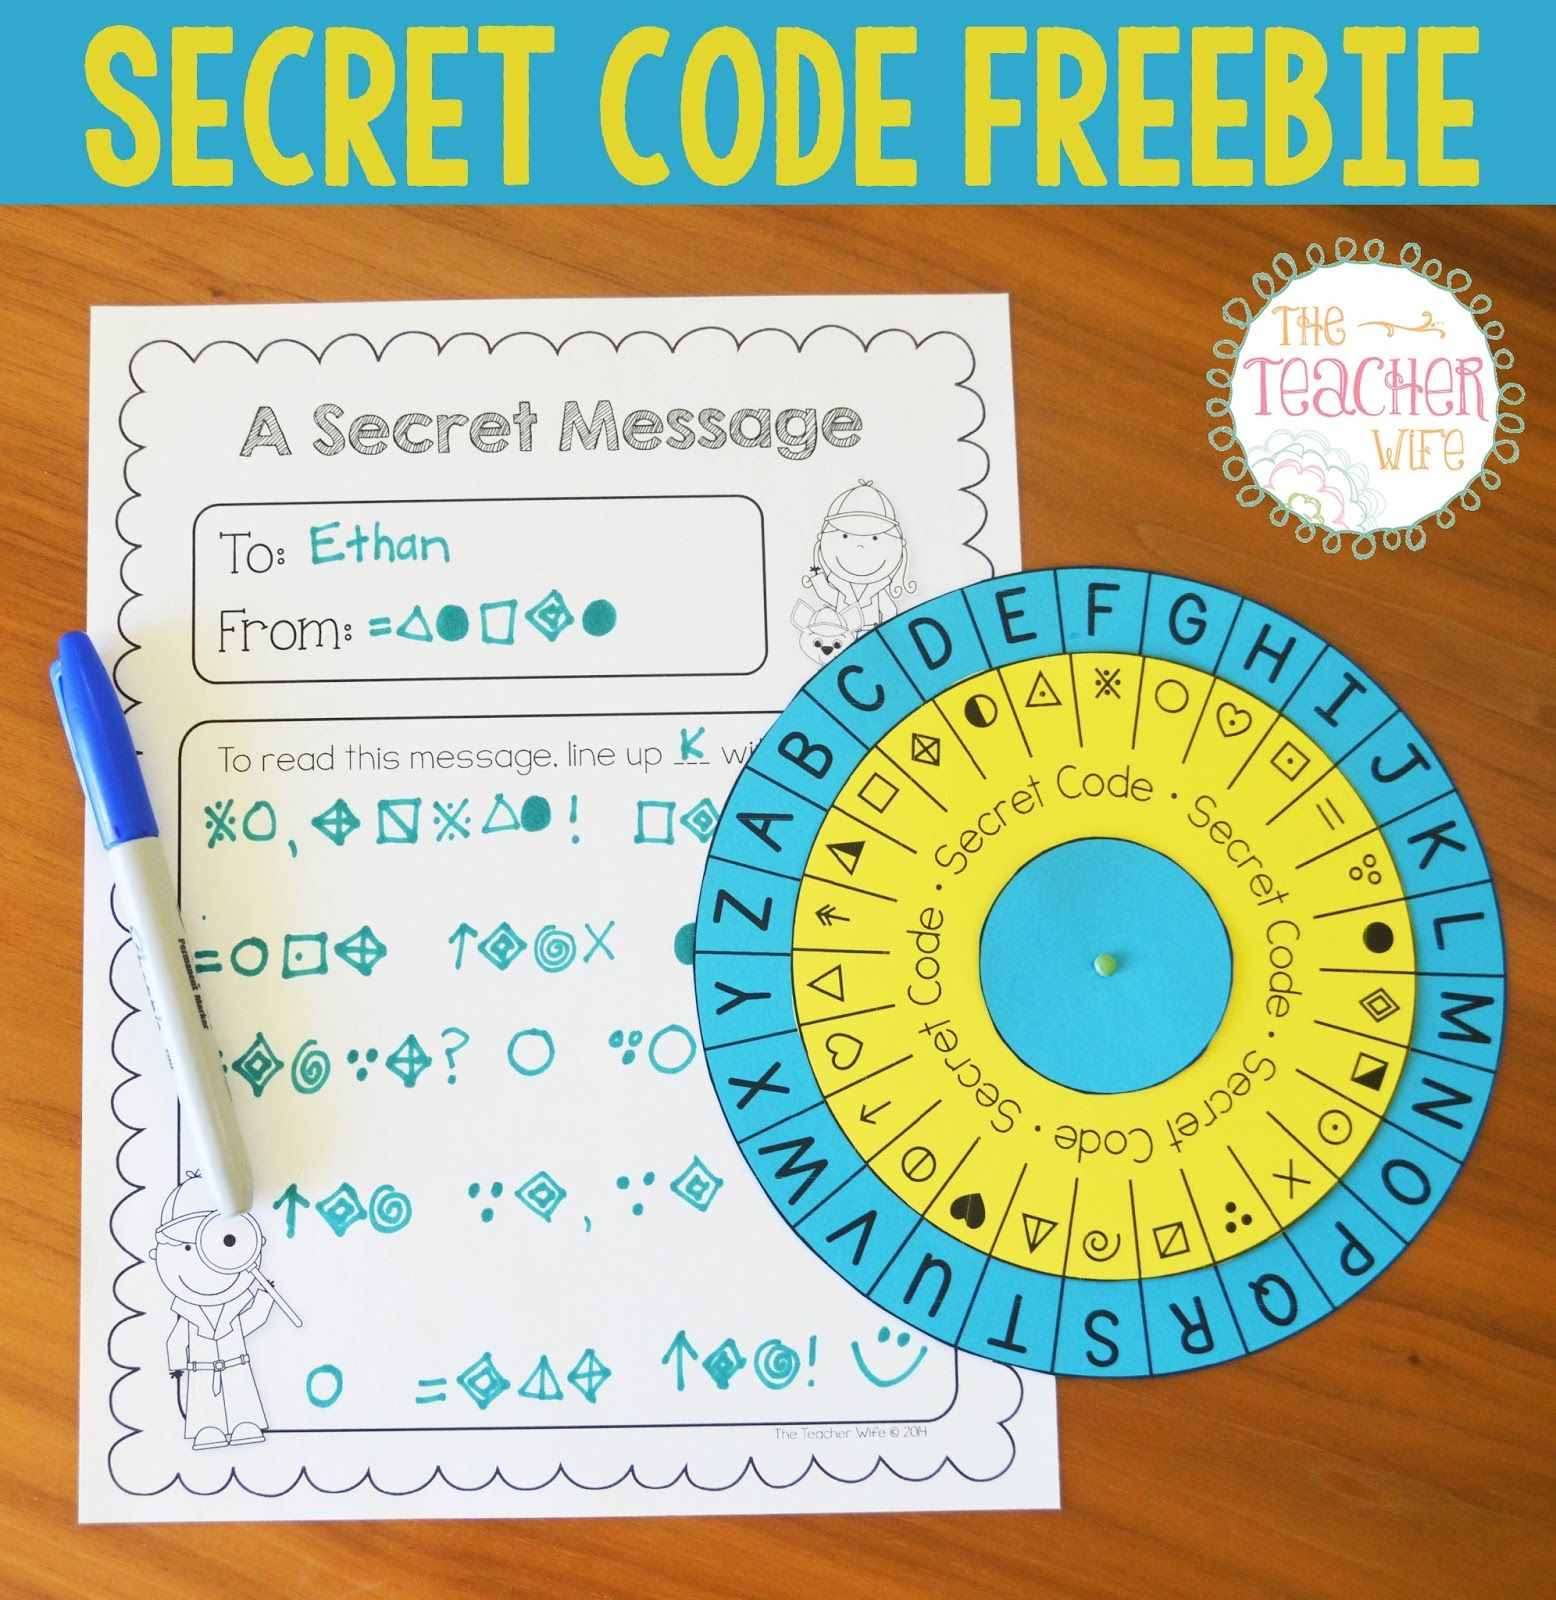 Secret Code Freebie This Includes A Decipher Wheel And A